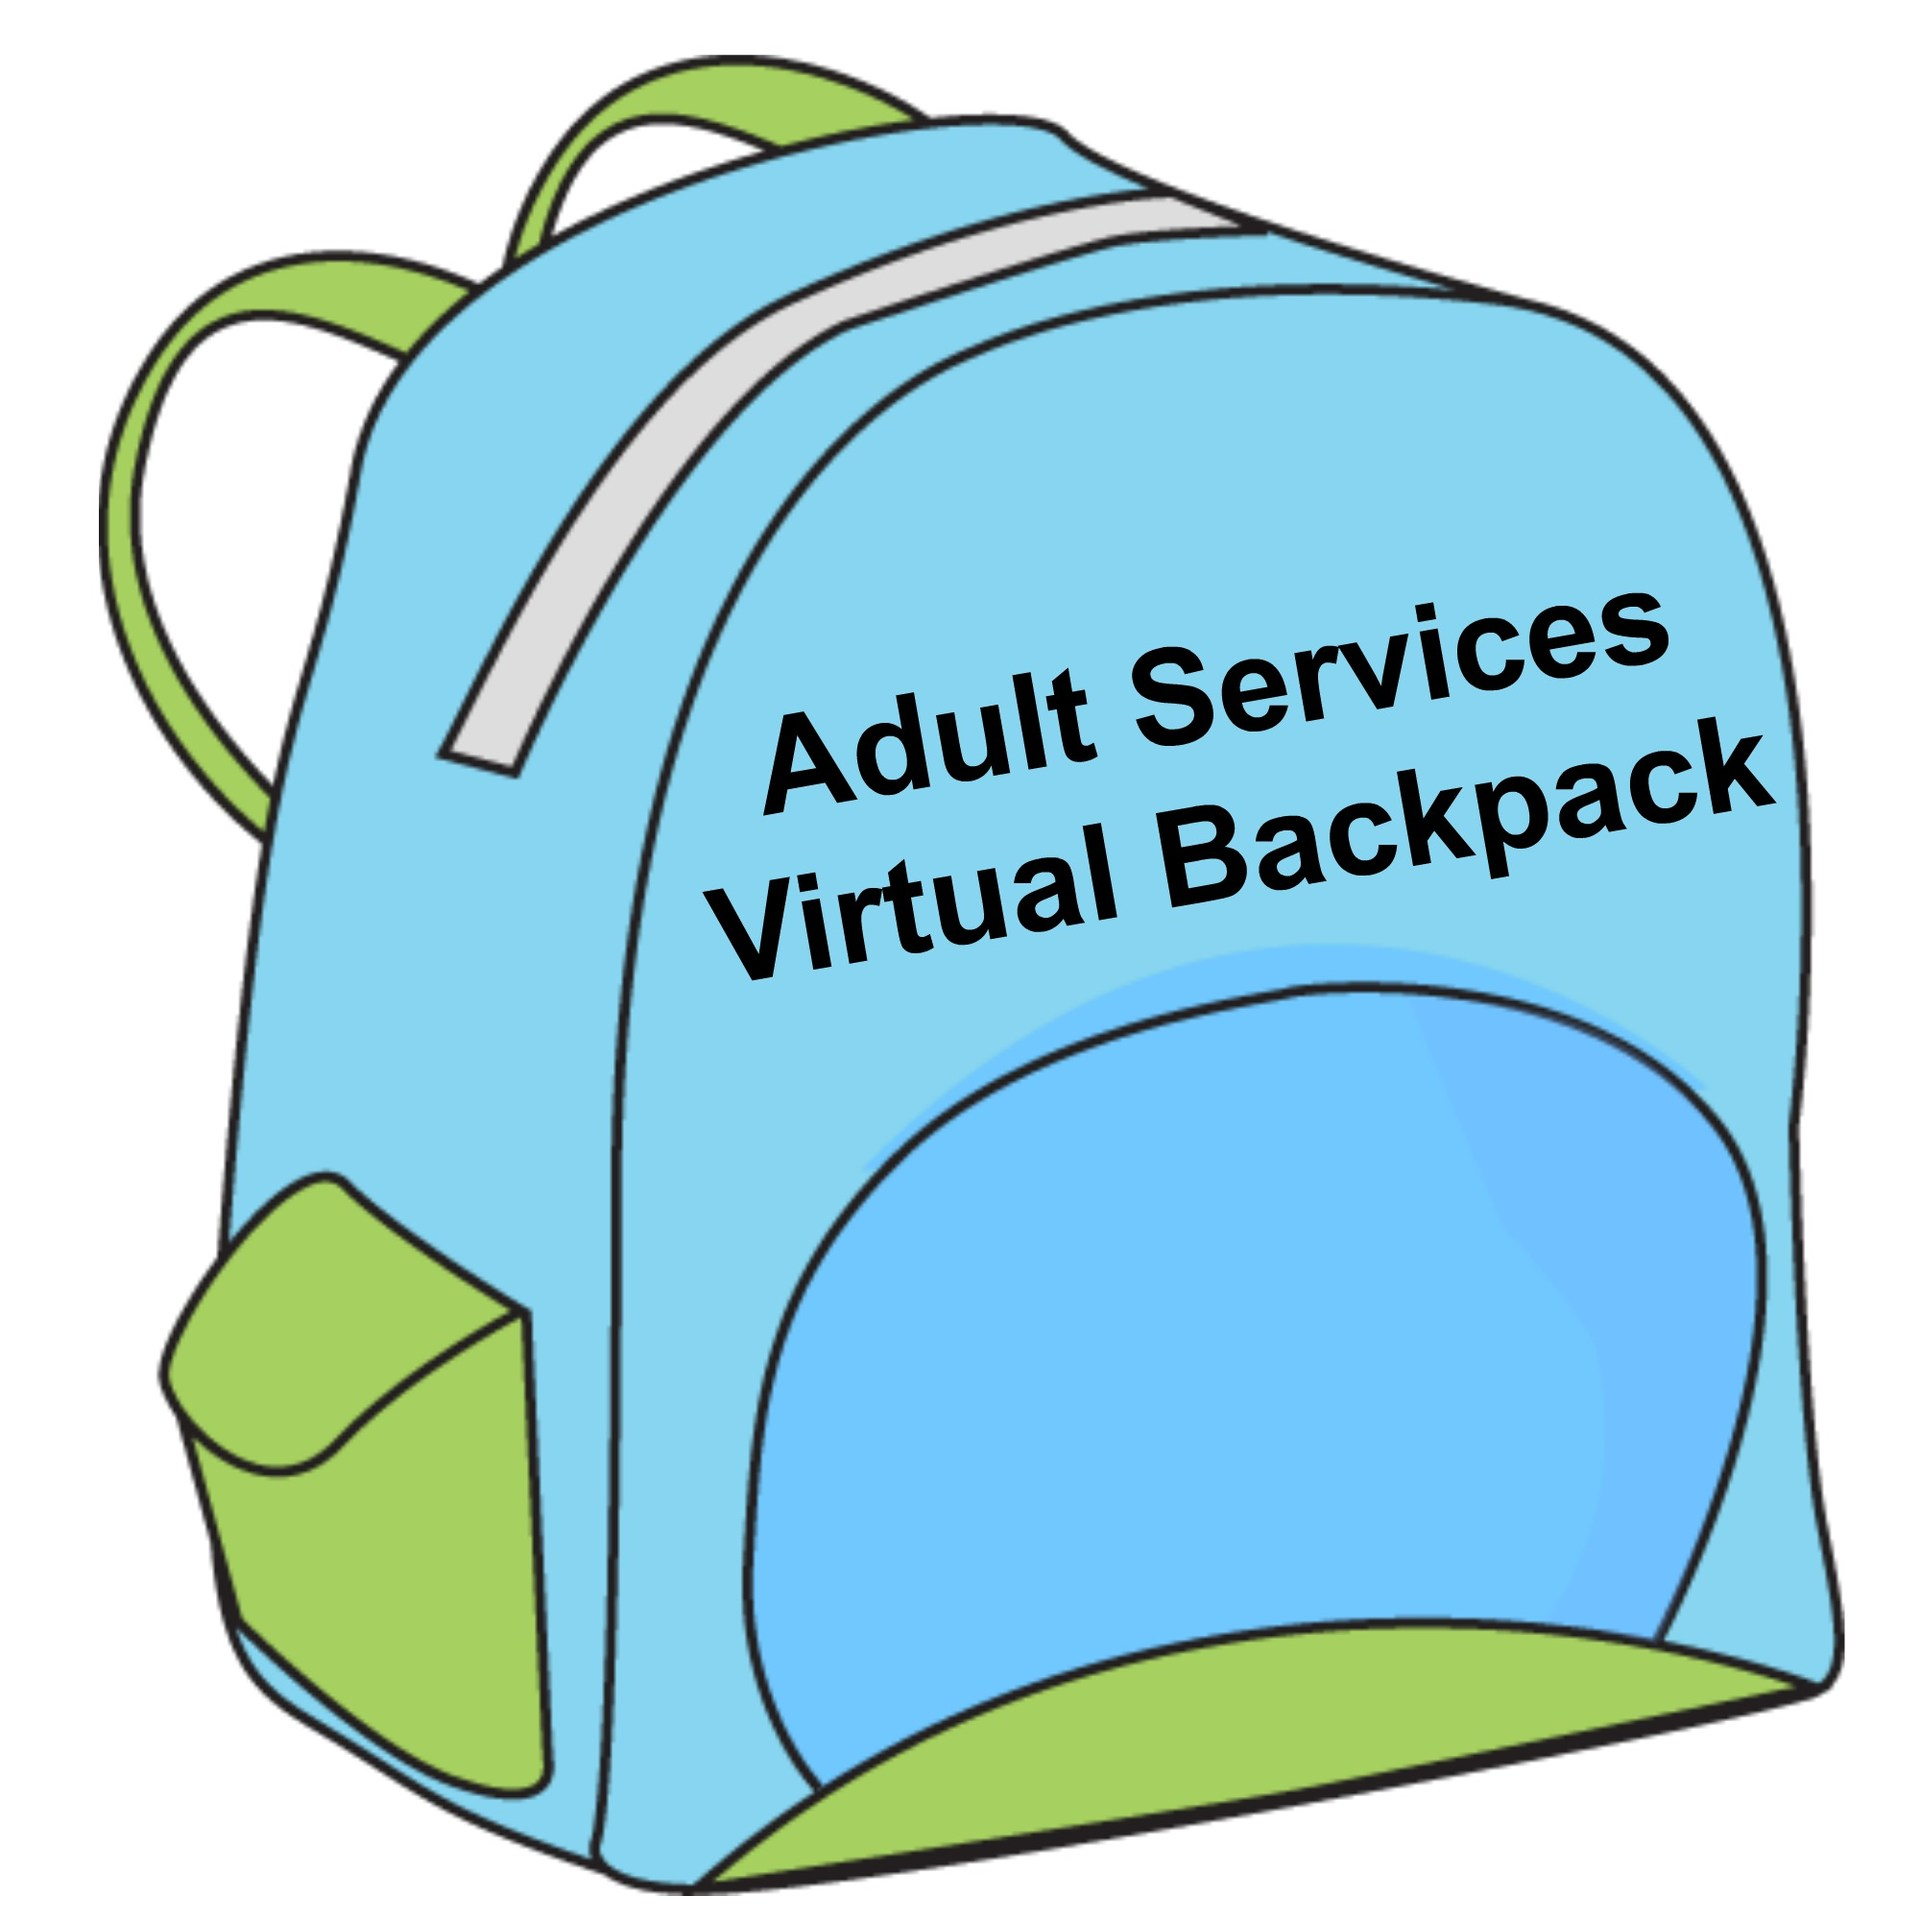 Adult Services Virtual Backpack